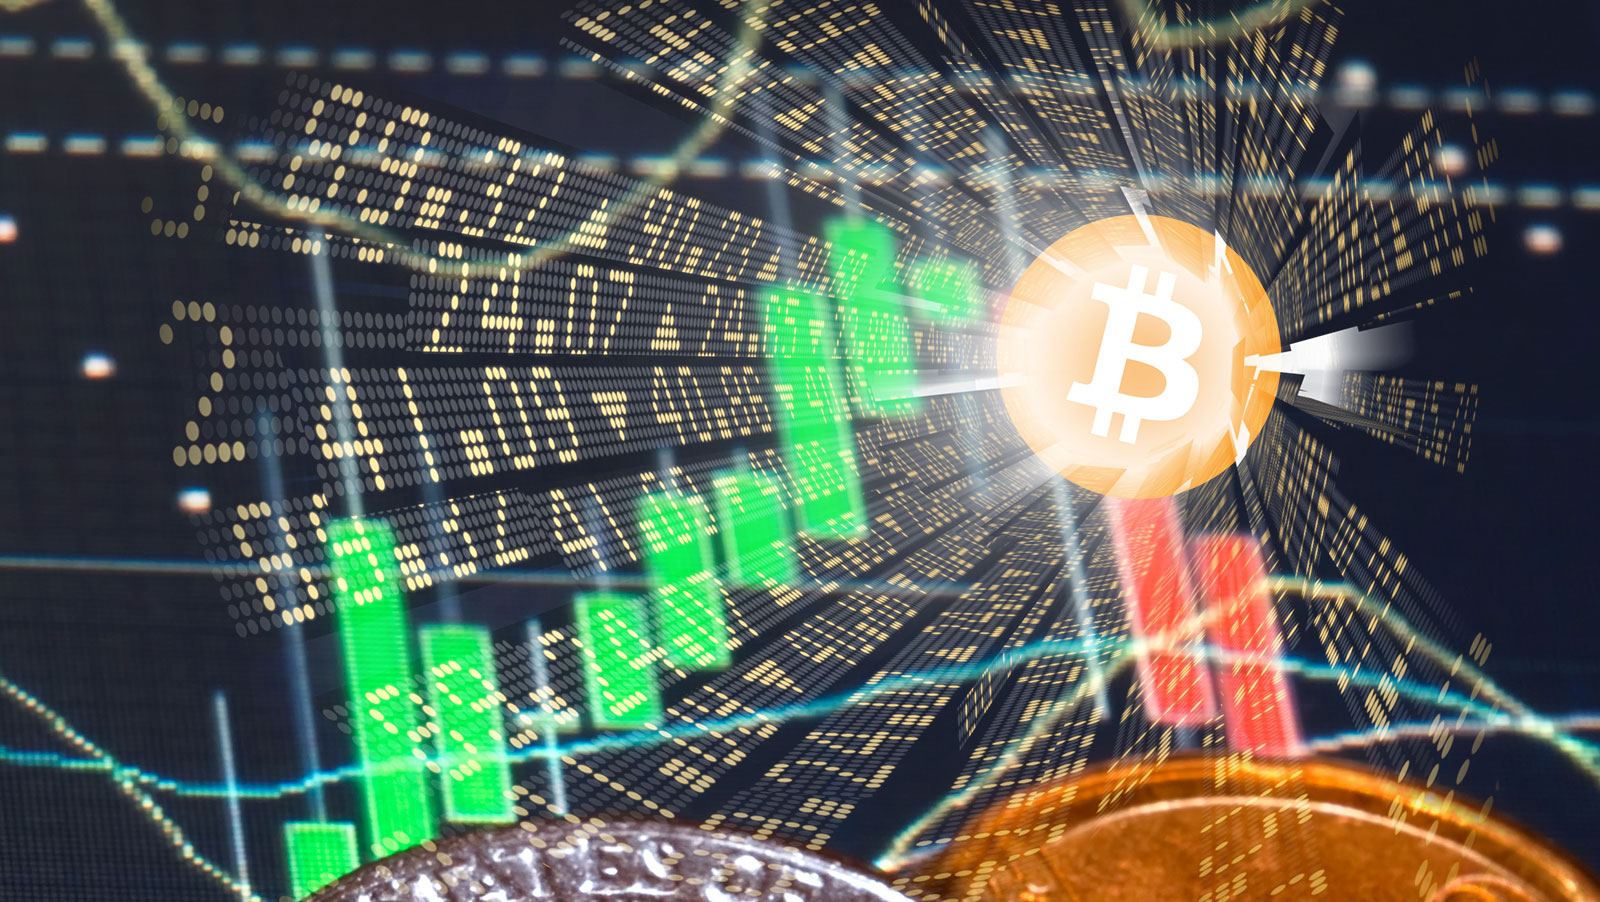 Bitcoin's bull run sends digital currency past $3,000 milestone